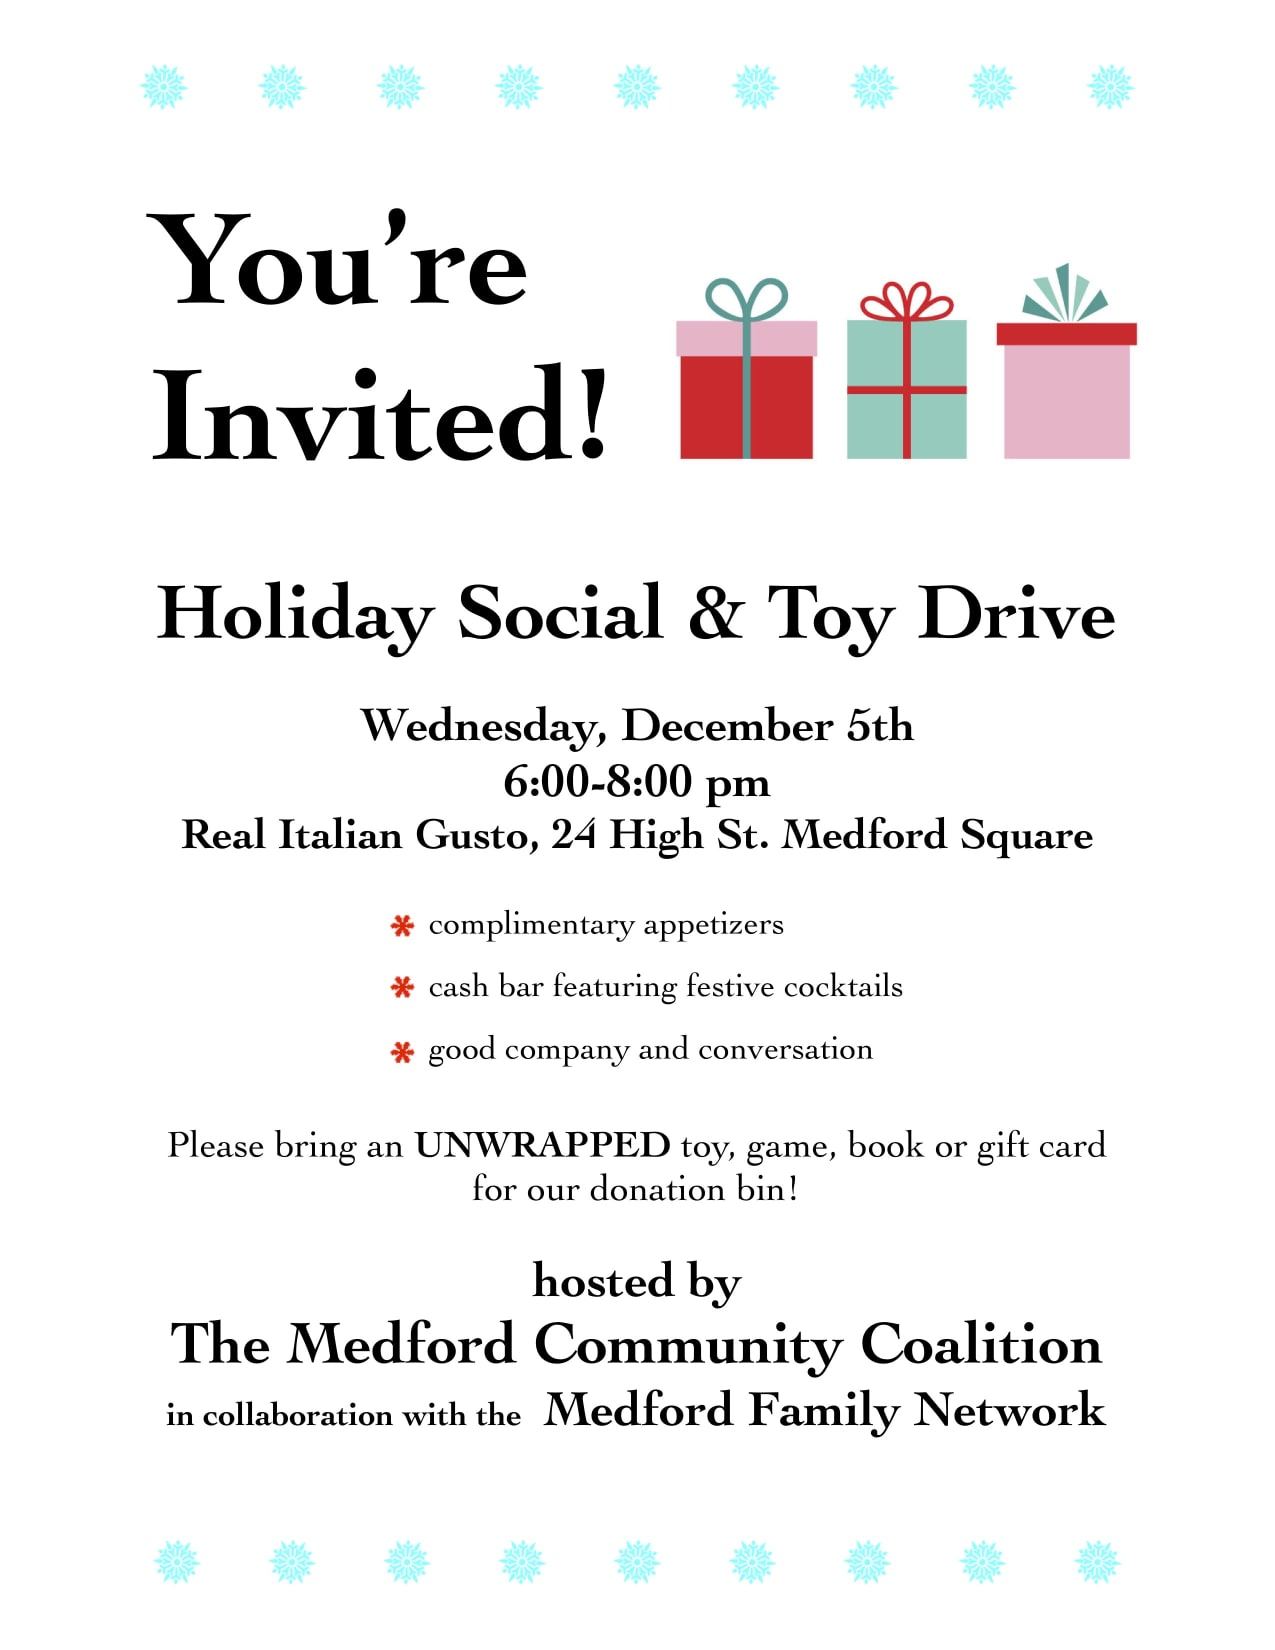 resize-MCC-Holiday-Social-and-Toy-Drive--2018-Nov-2018-w1275.jpg